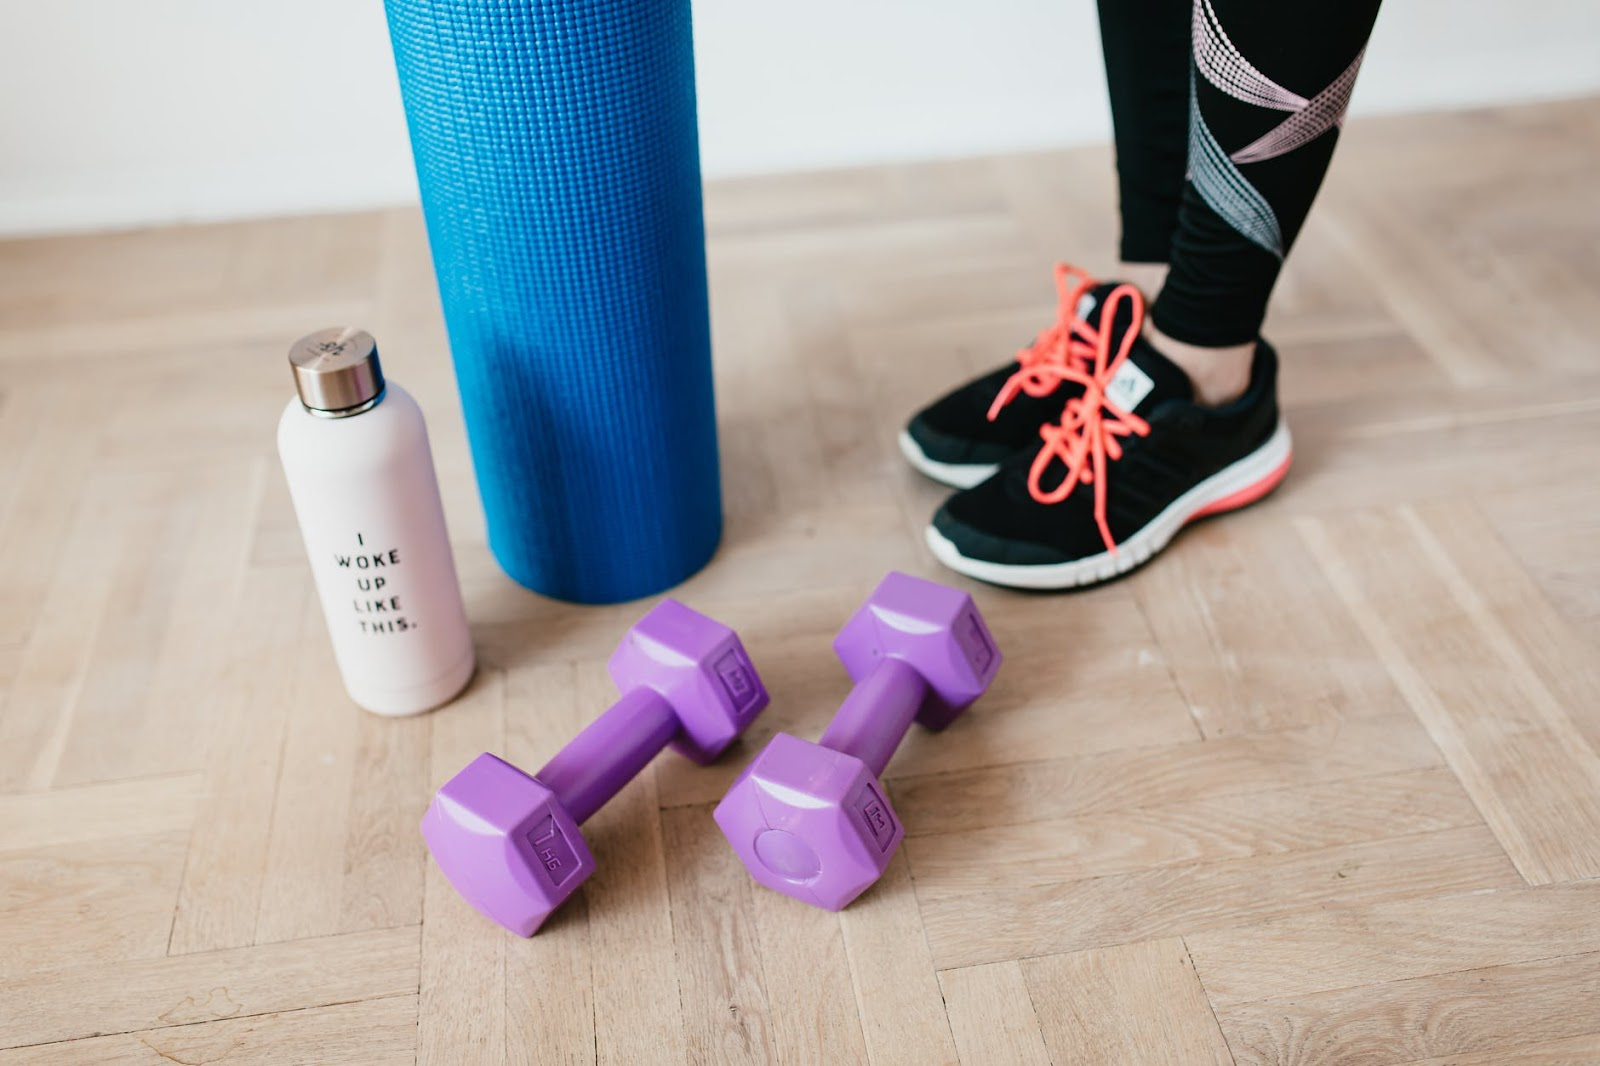 2 - USE SMALL EXERCISE EQUIPMENT.